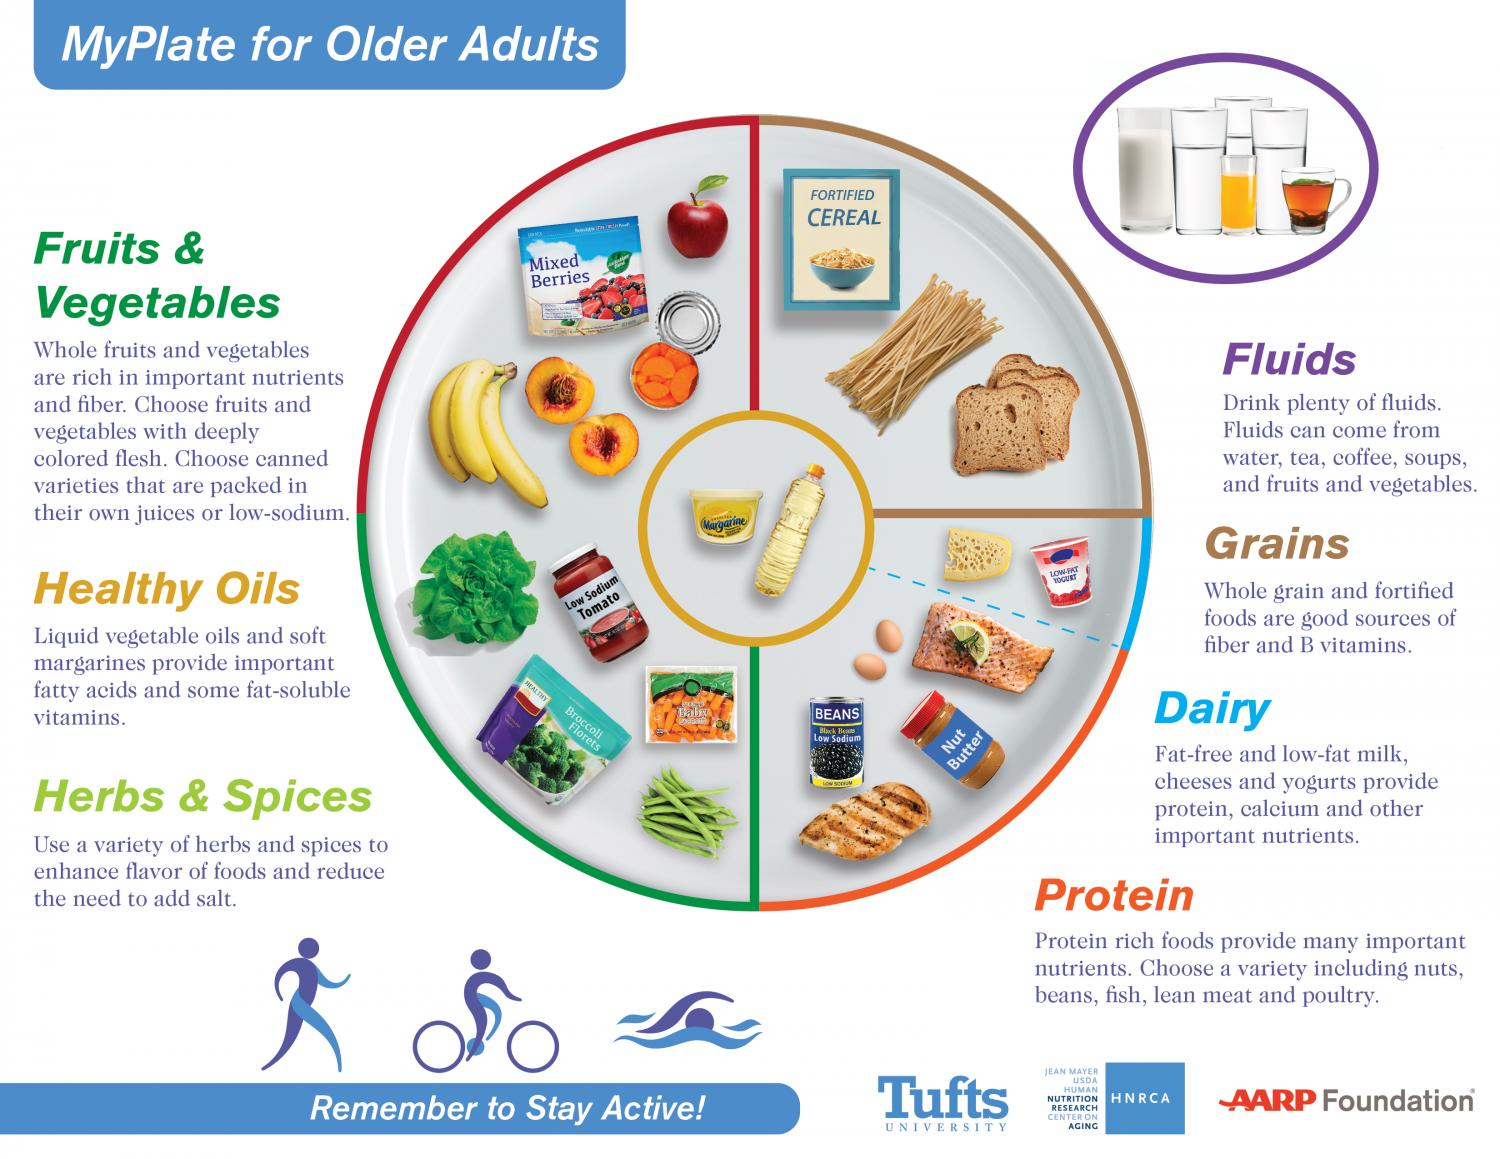 Nutrition scientists provide updated MyPlate for older adults